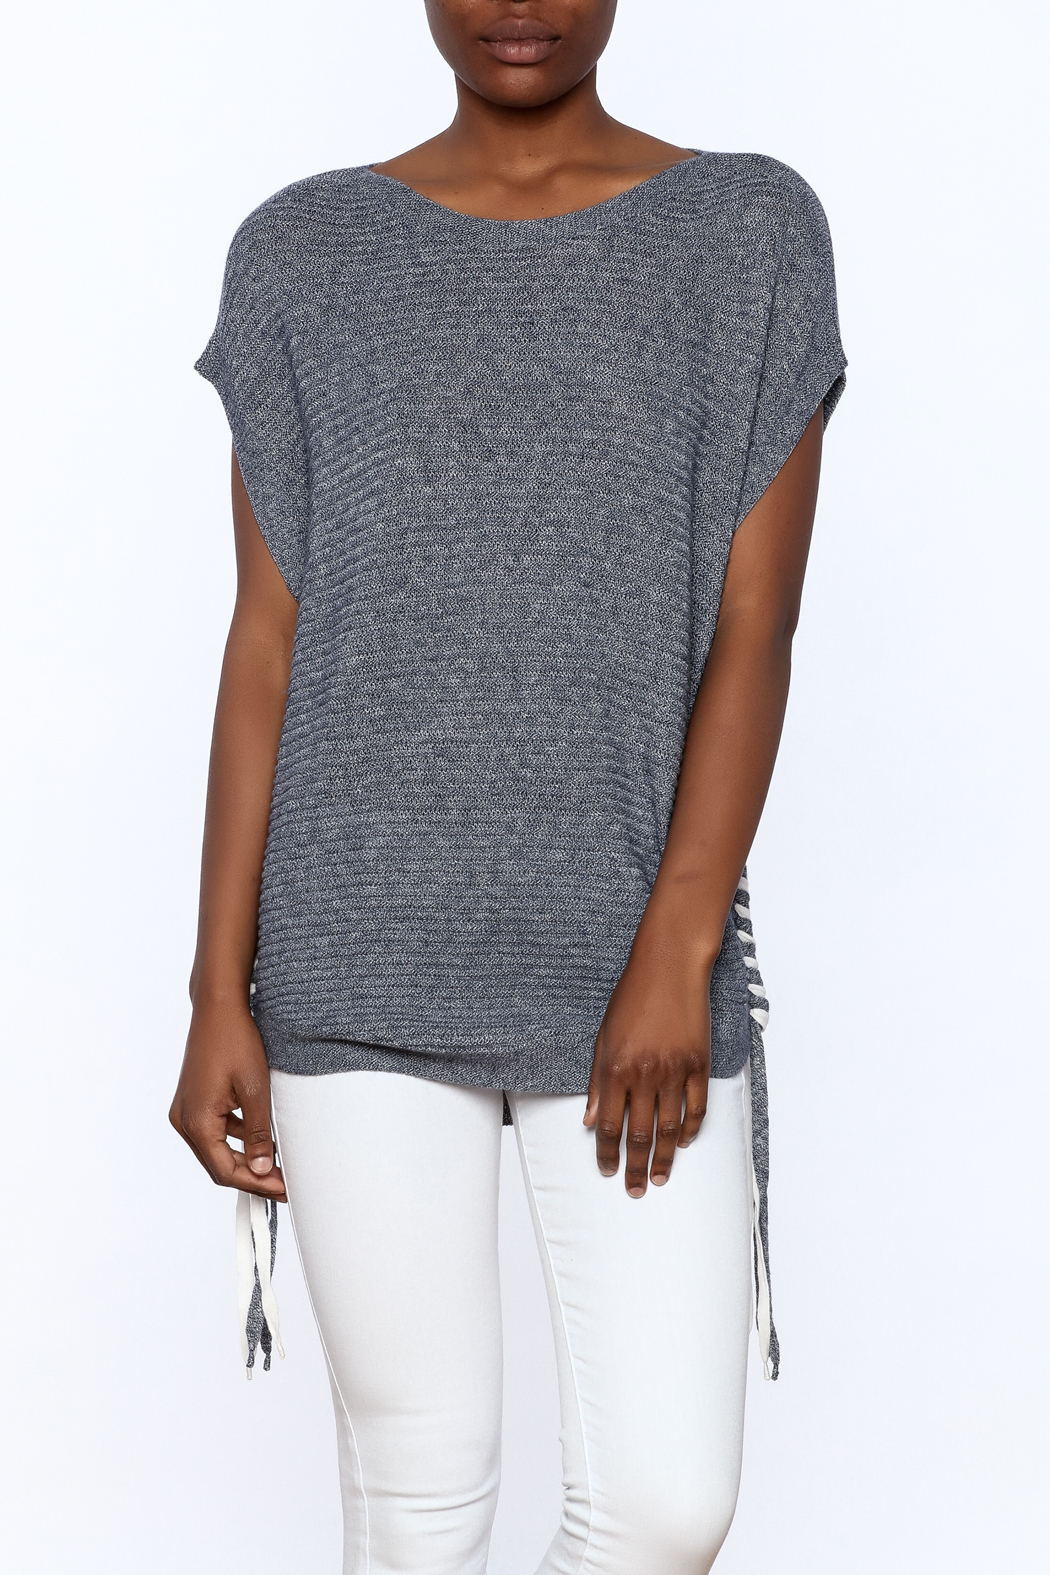 zoe couture Grey Tunic Sweater - Main Image